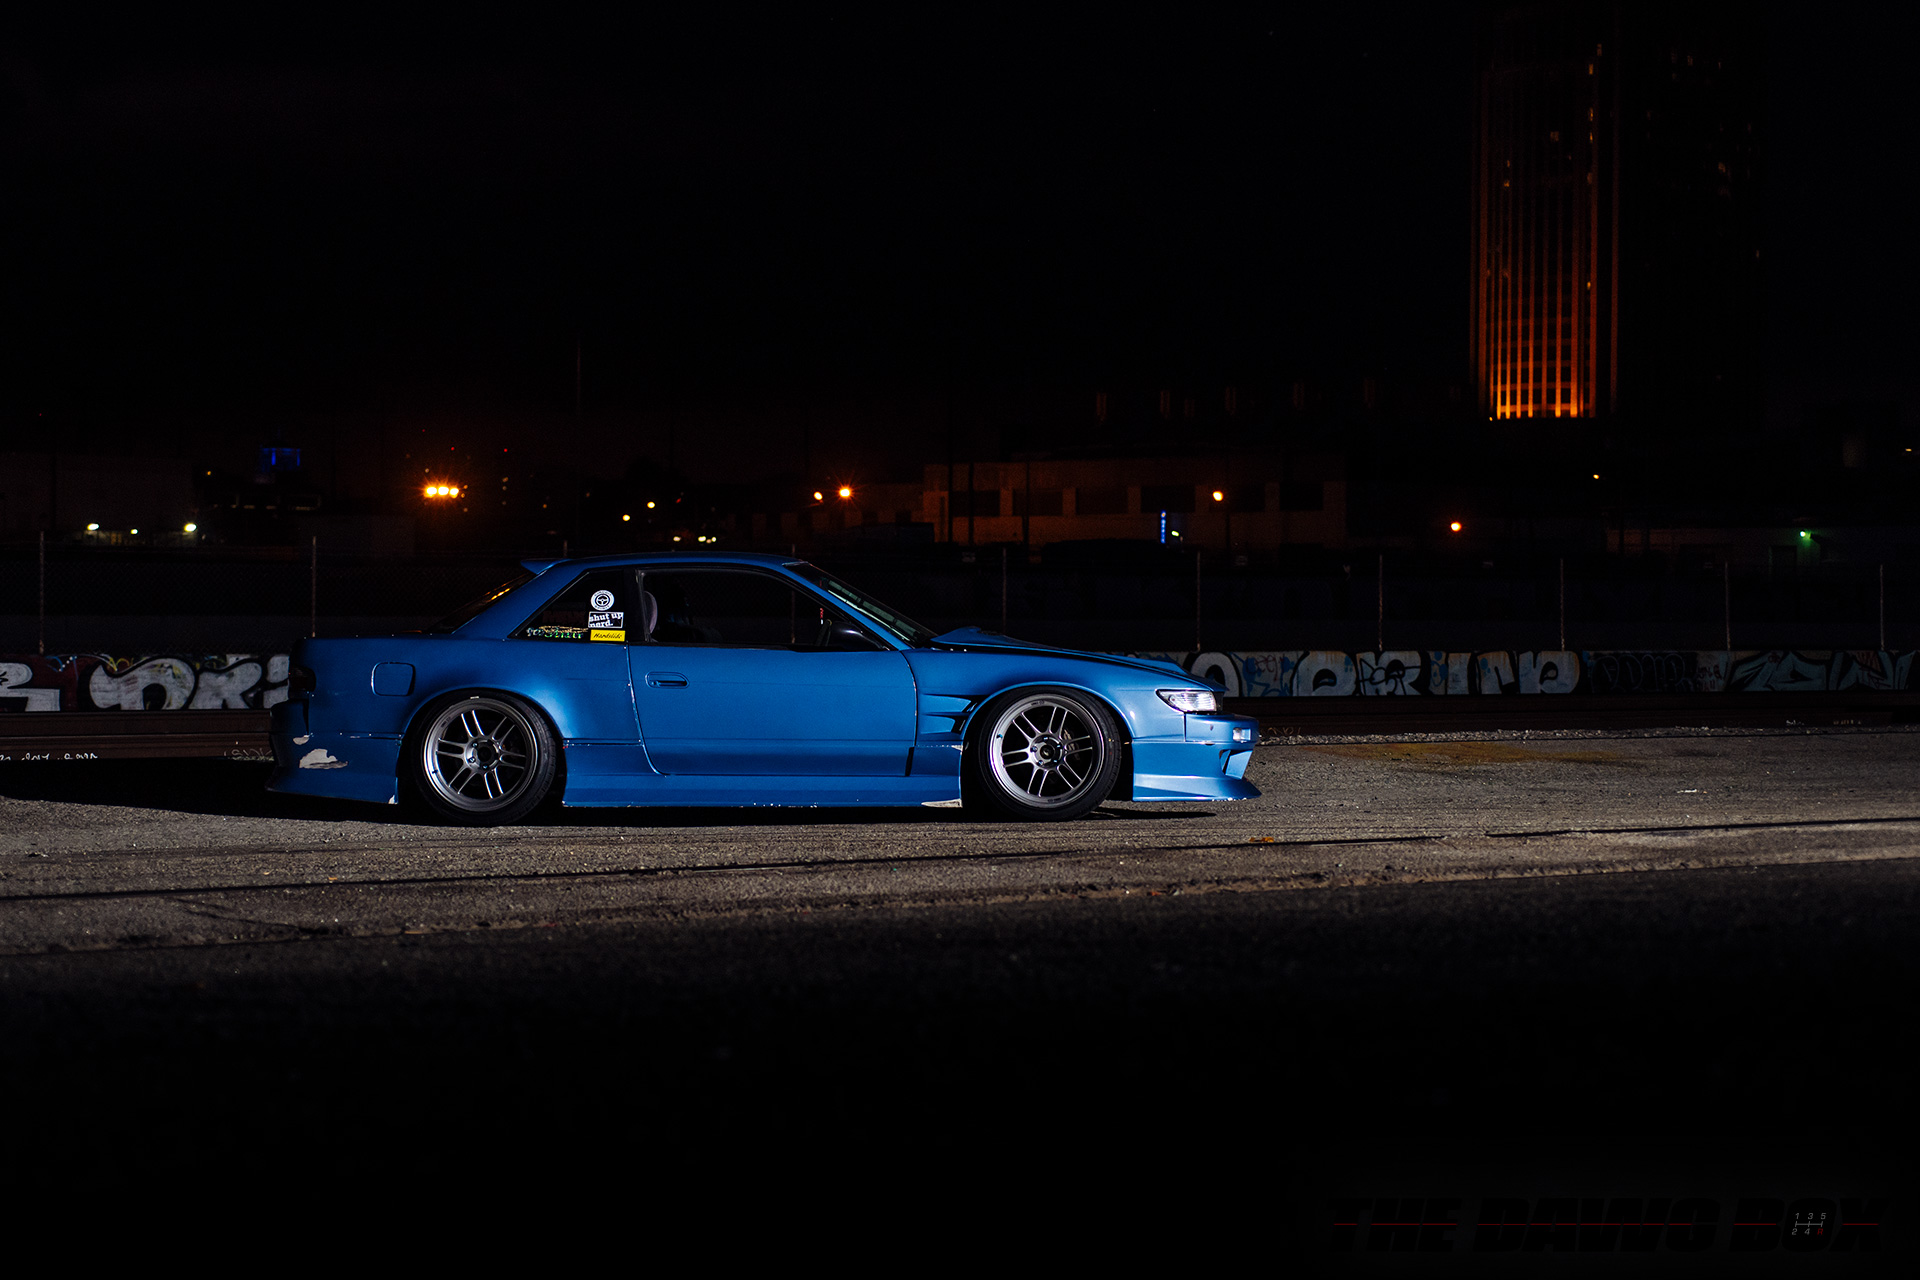 Nissan S13 Coupe, Side